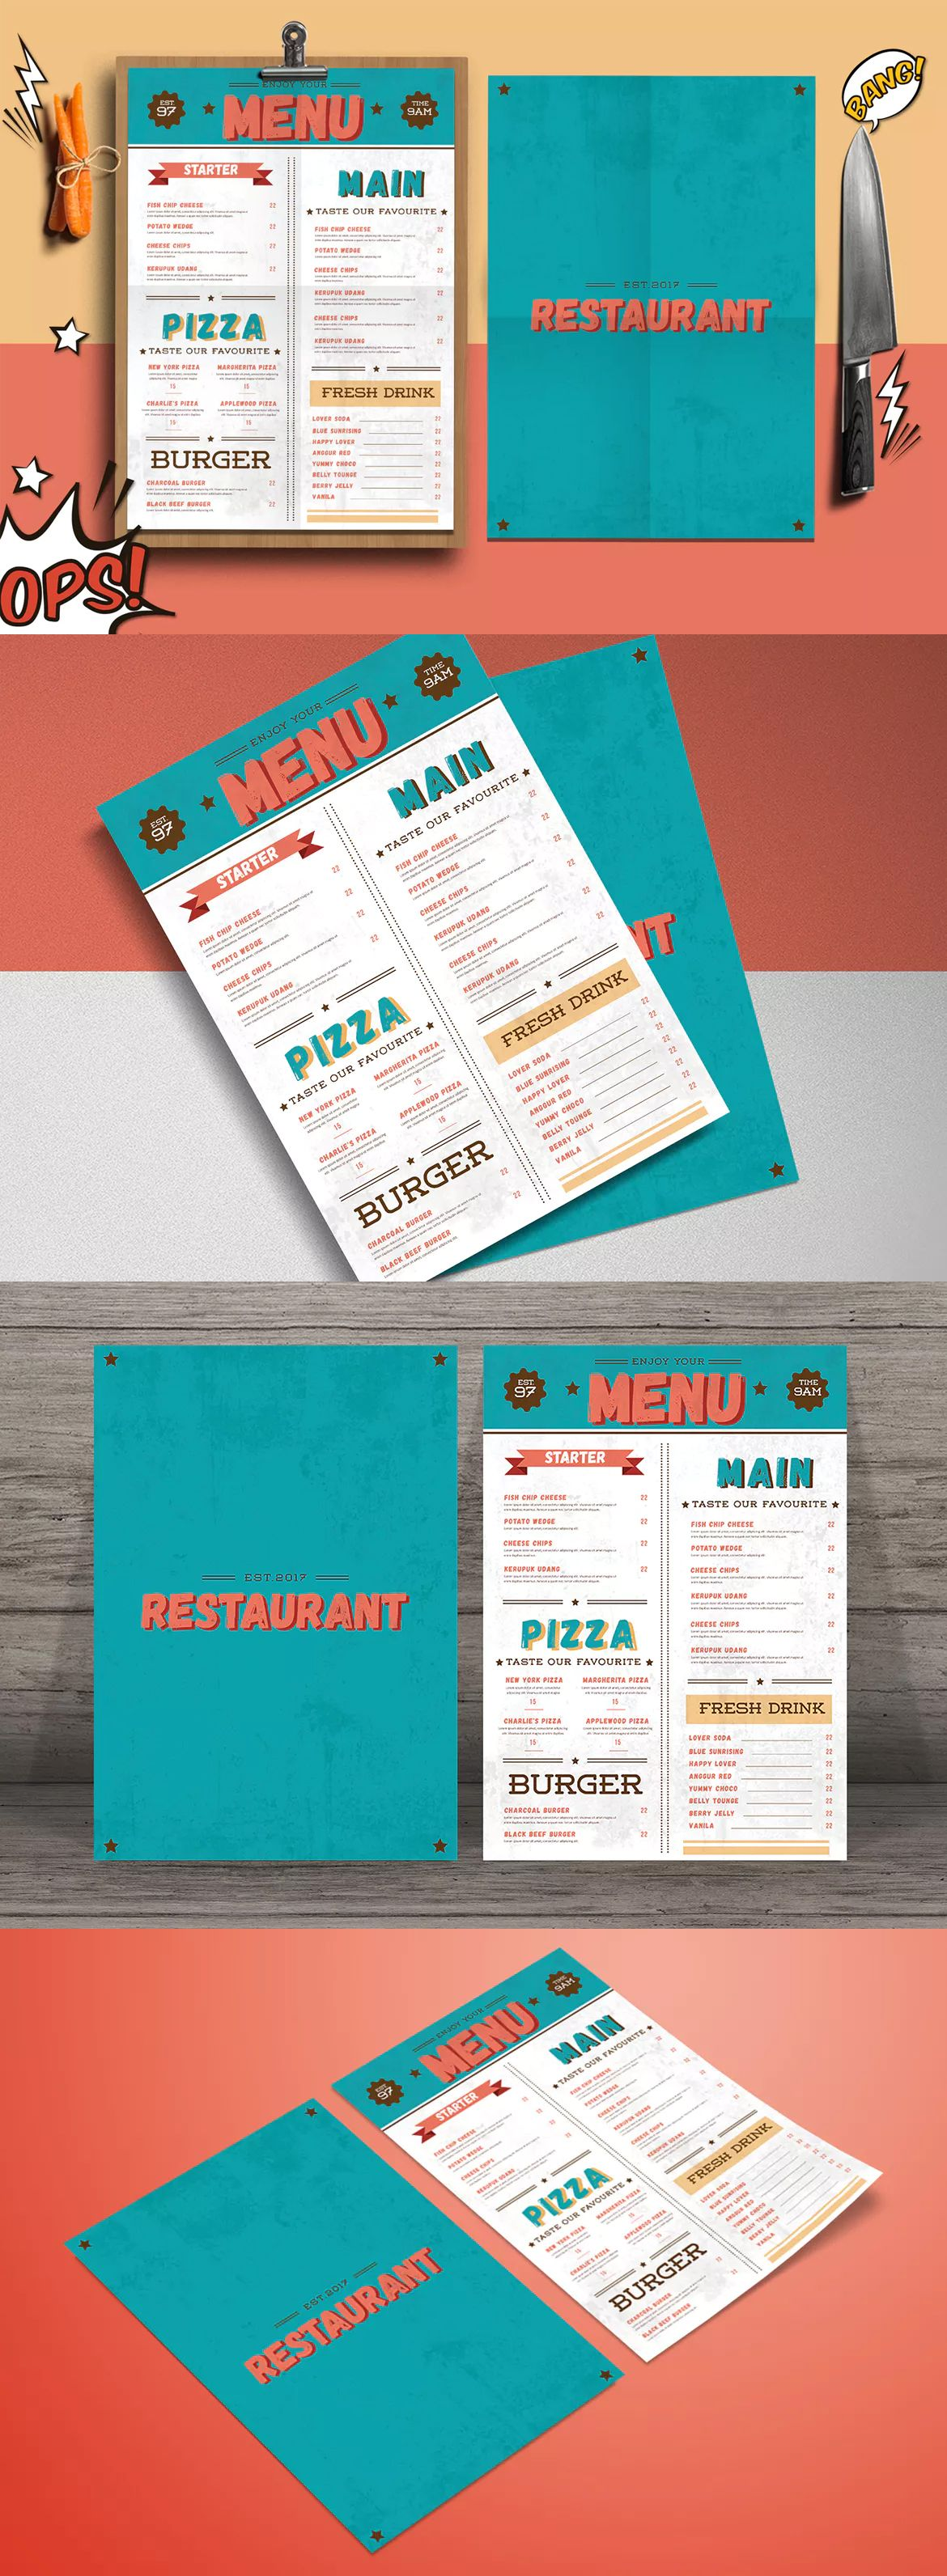 Retro Menu Flyer Template Ai Psd  Flyer Templates